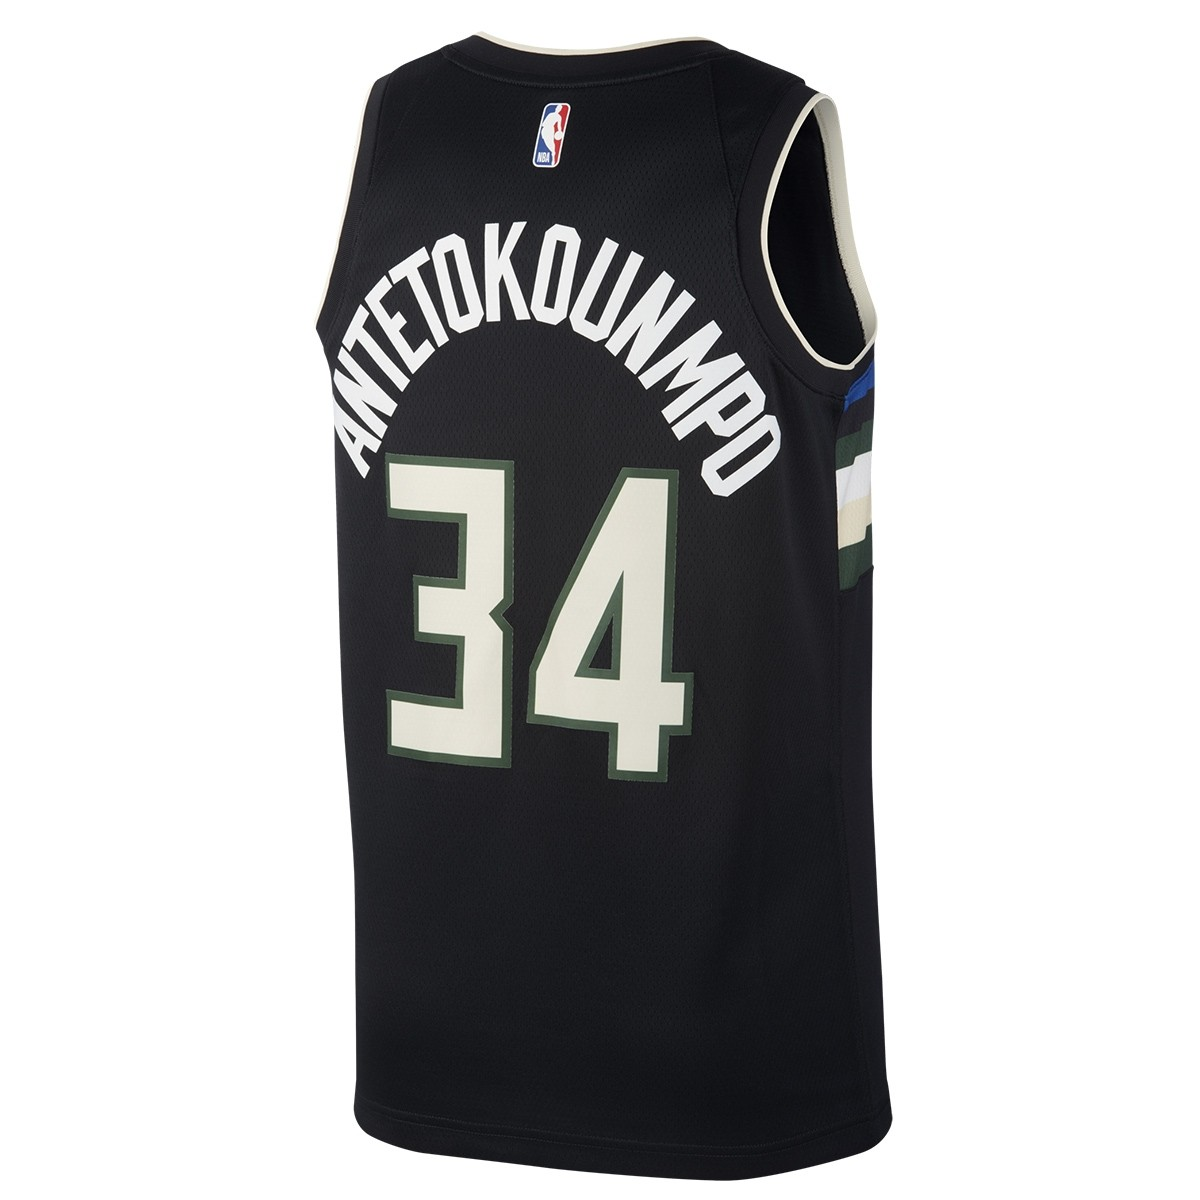 Jordan NBA Milwaukee Bucks Swingman Jersey Antetokounmpo 'Statement Edition'-CV9484-010